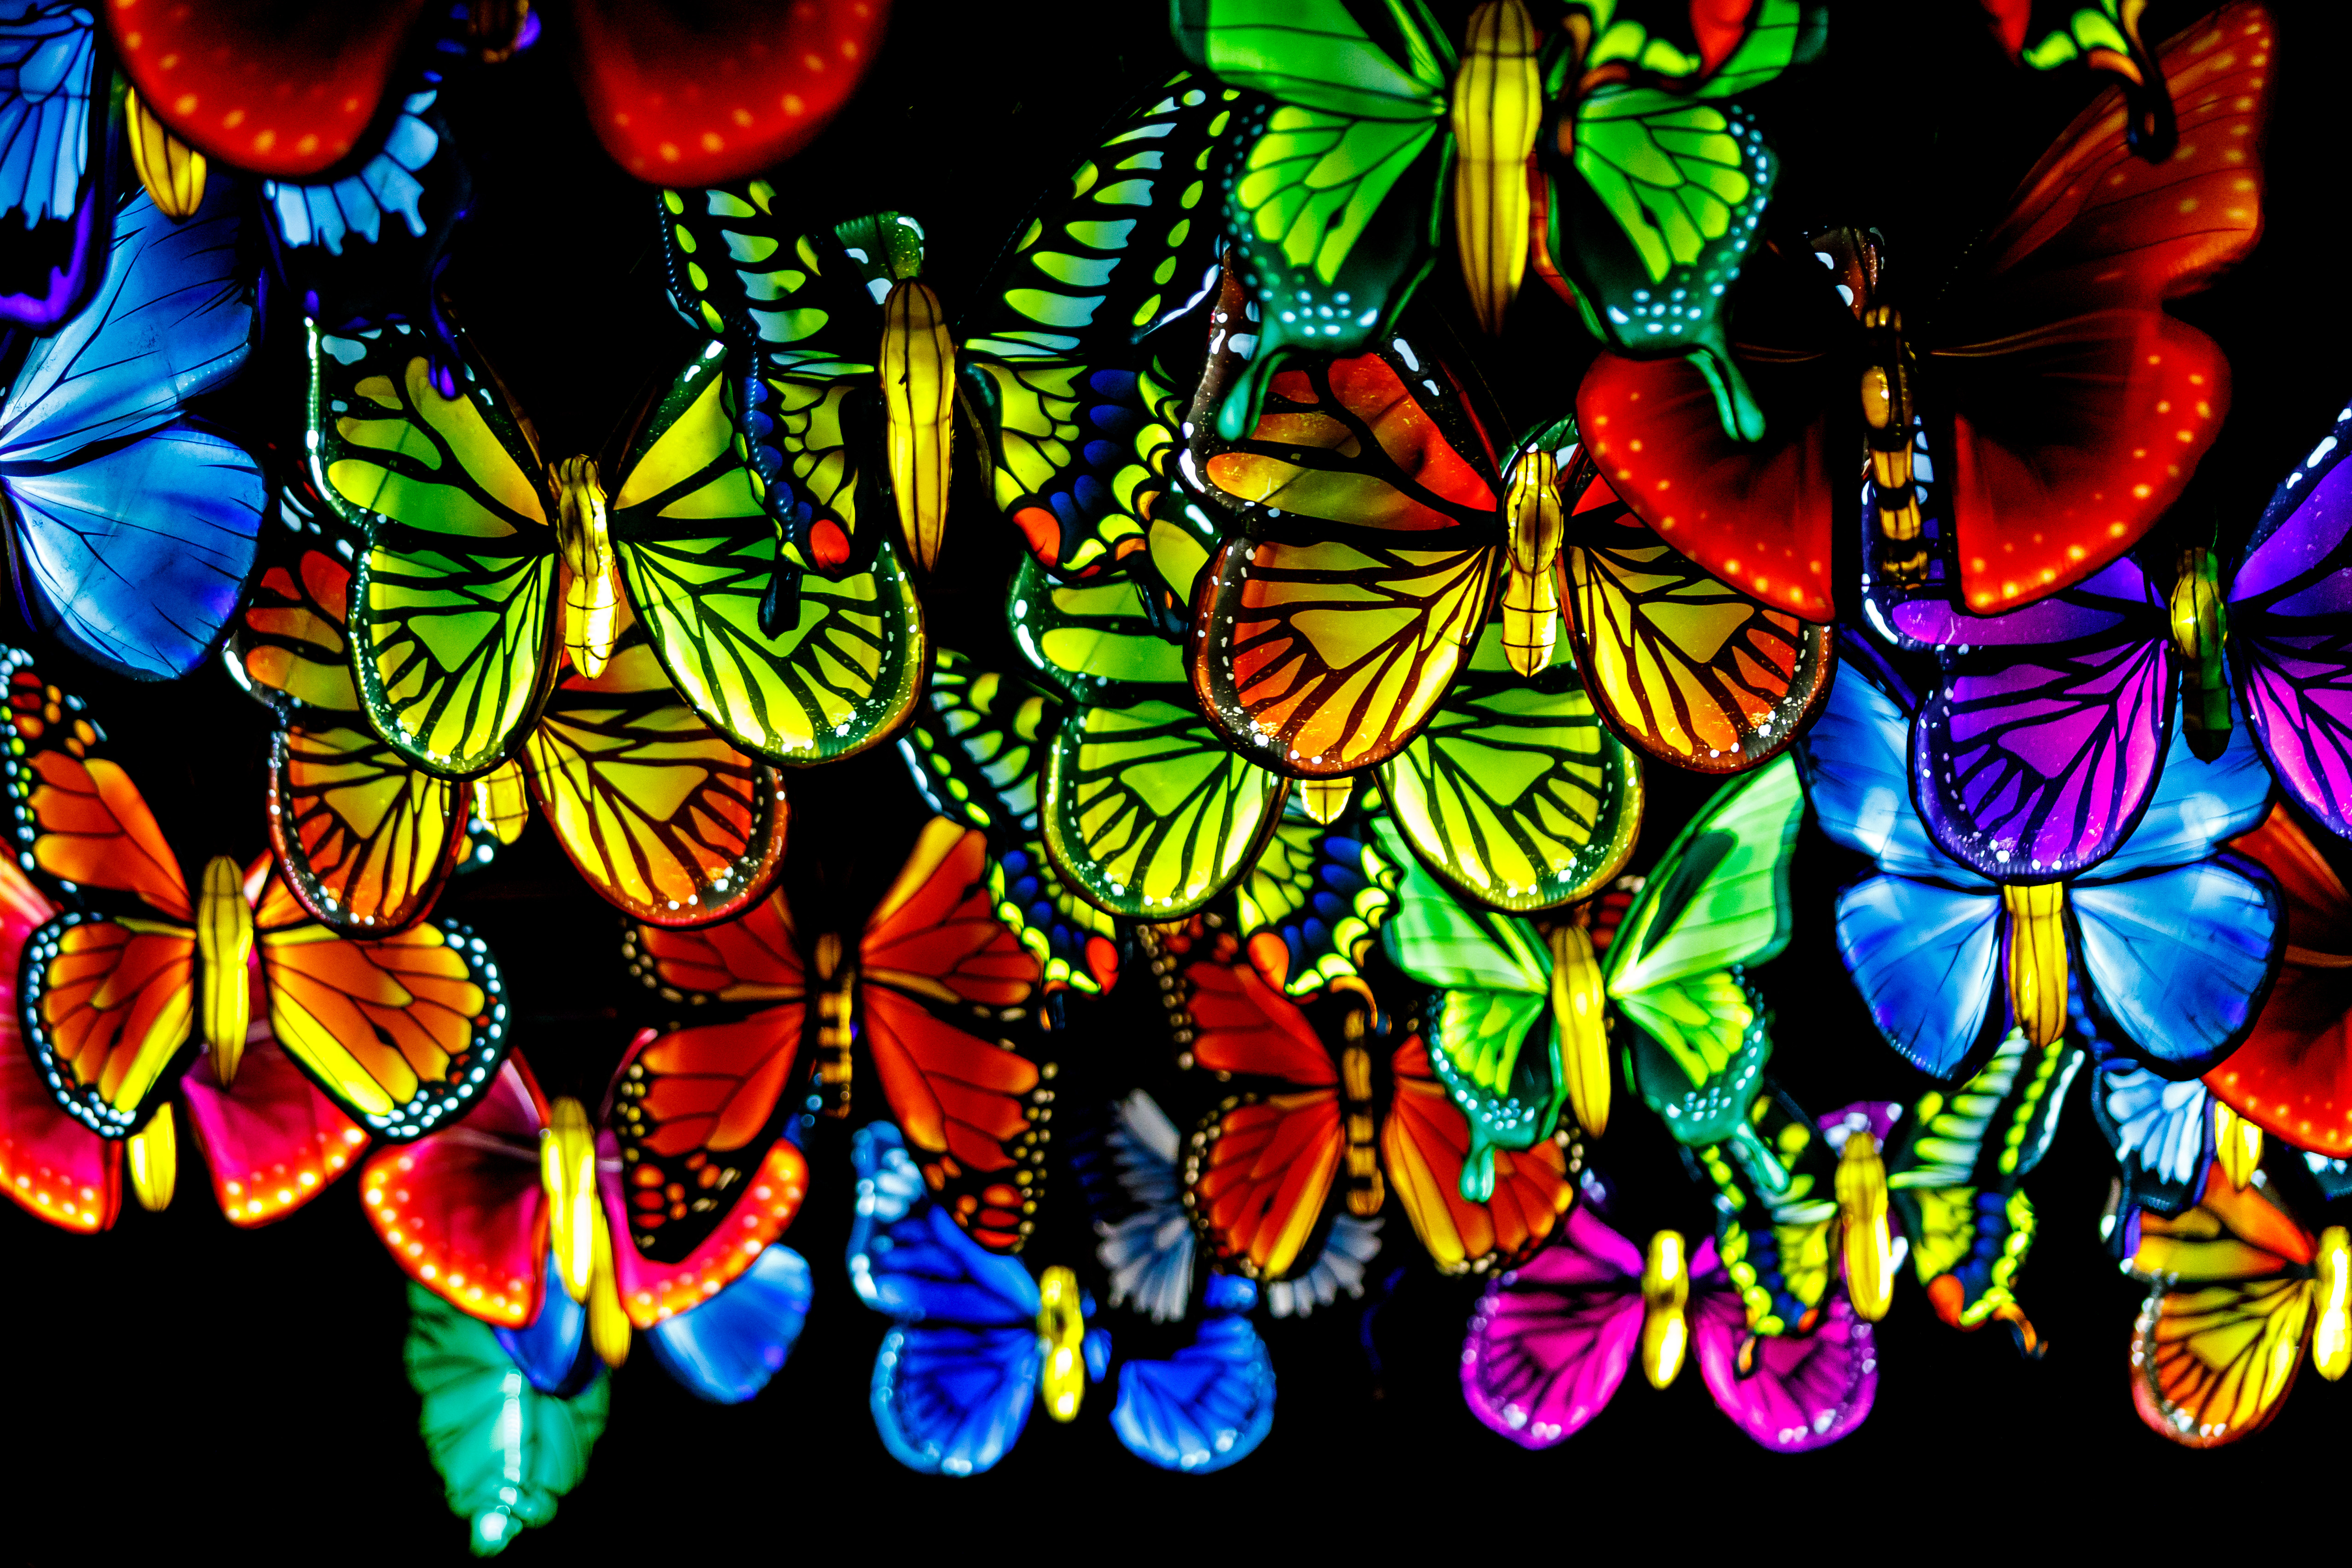 Halloween 2020 Franklin Park Ma A dazzling lantern display opens at the Franklin Park Zoo   The